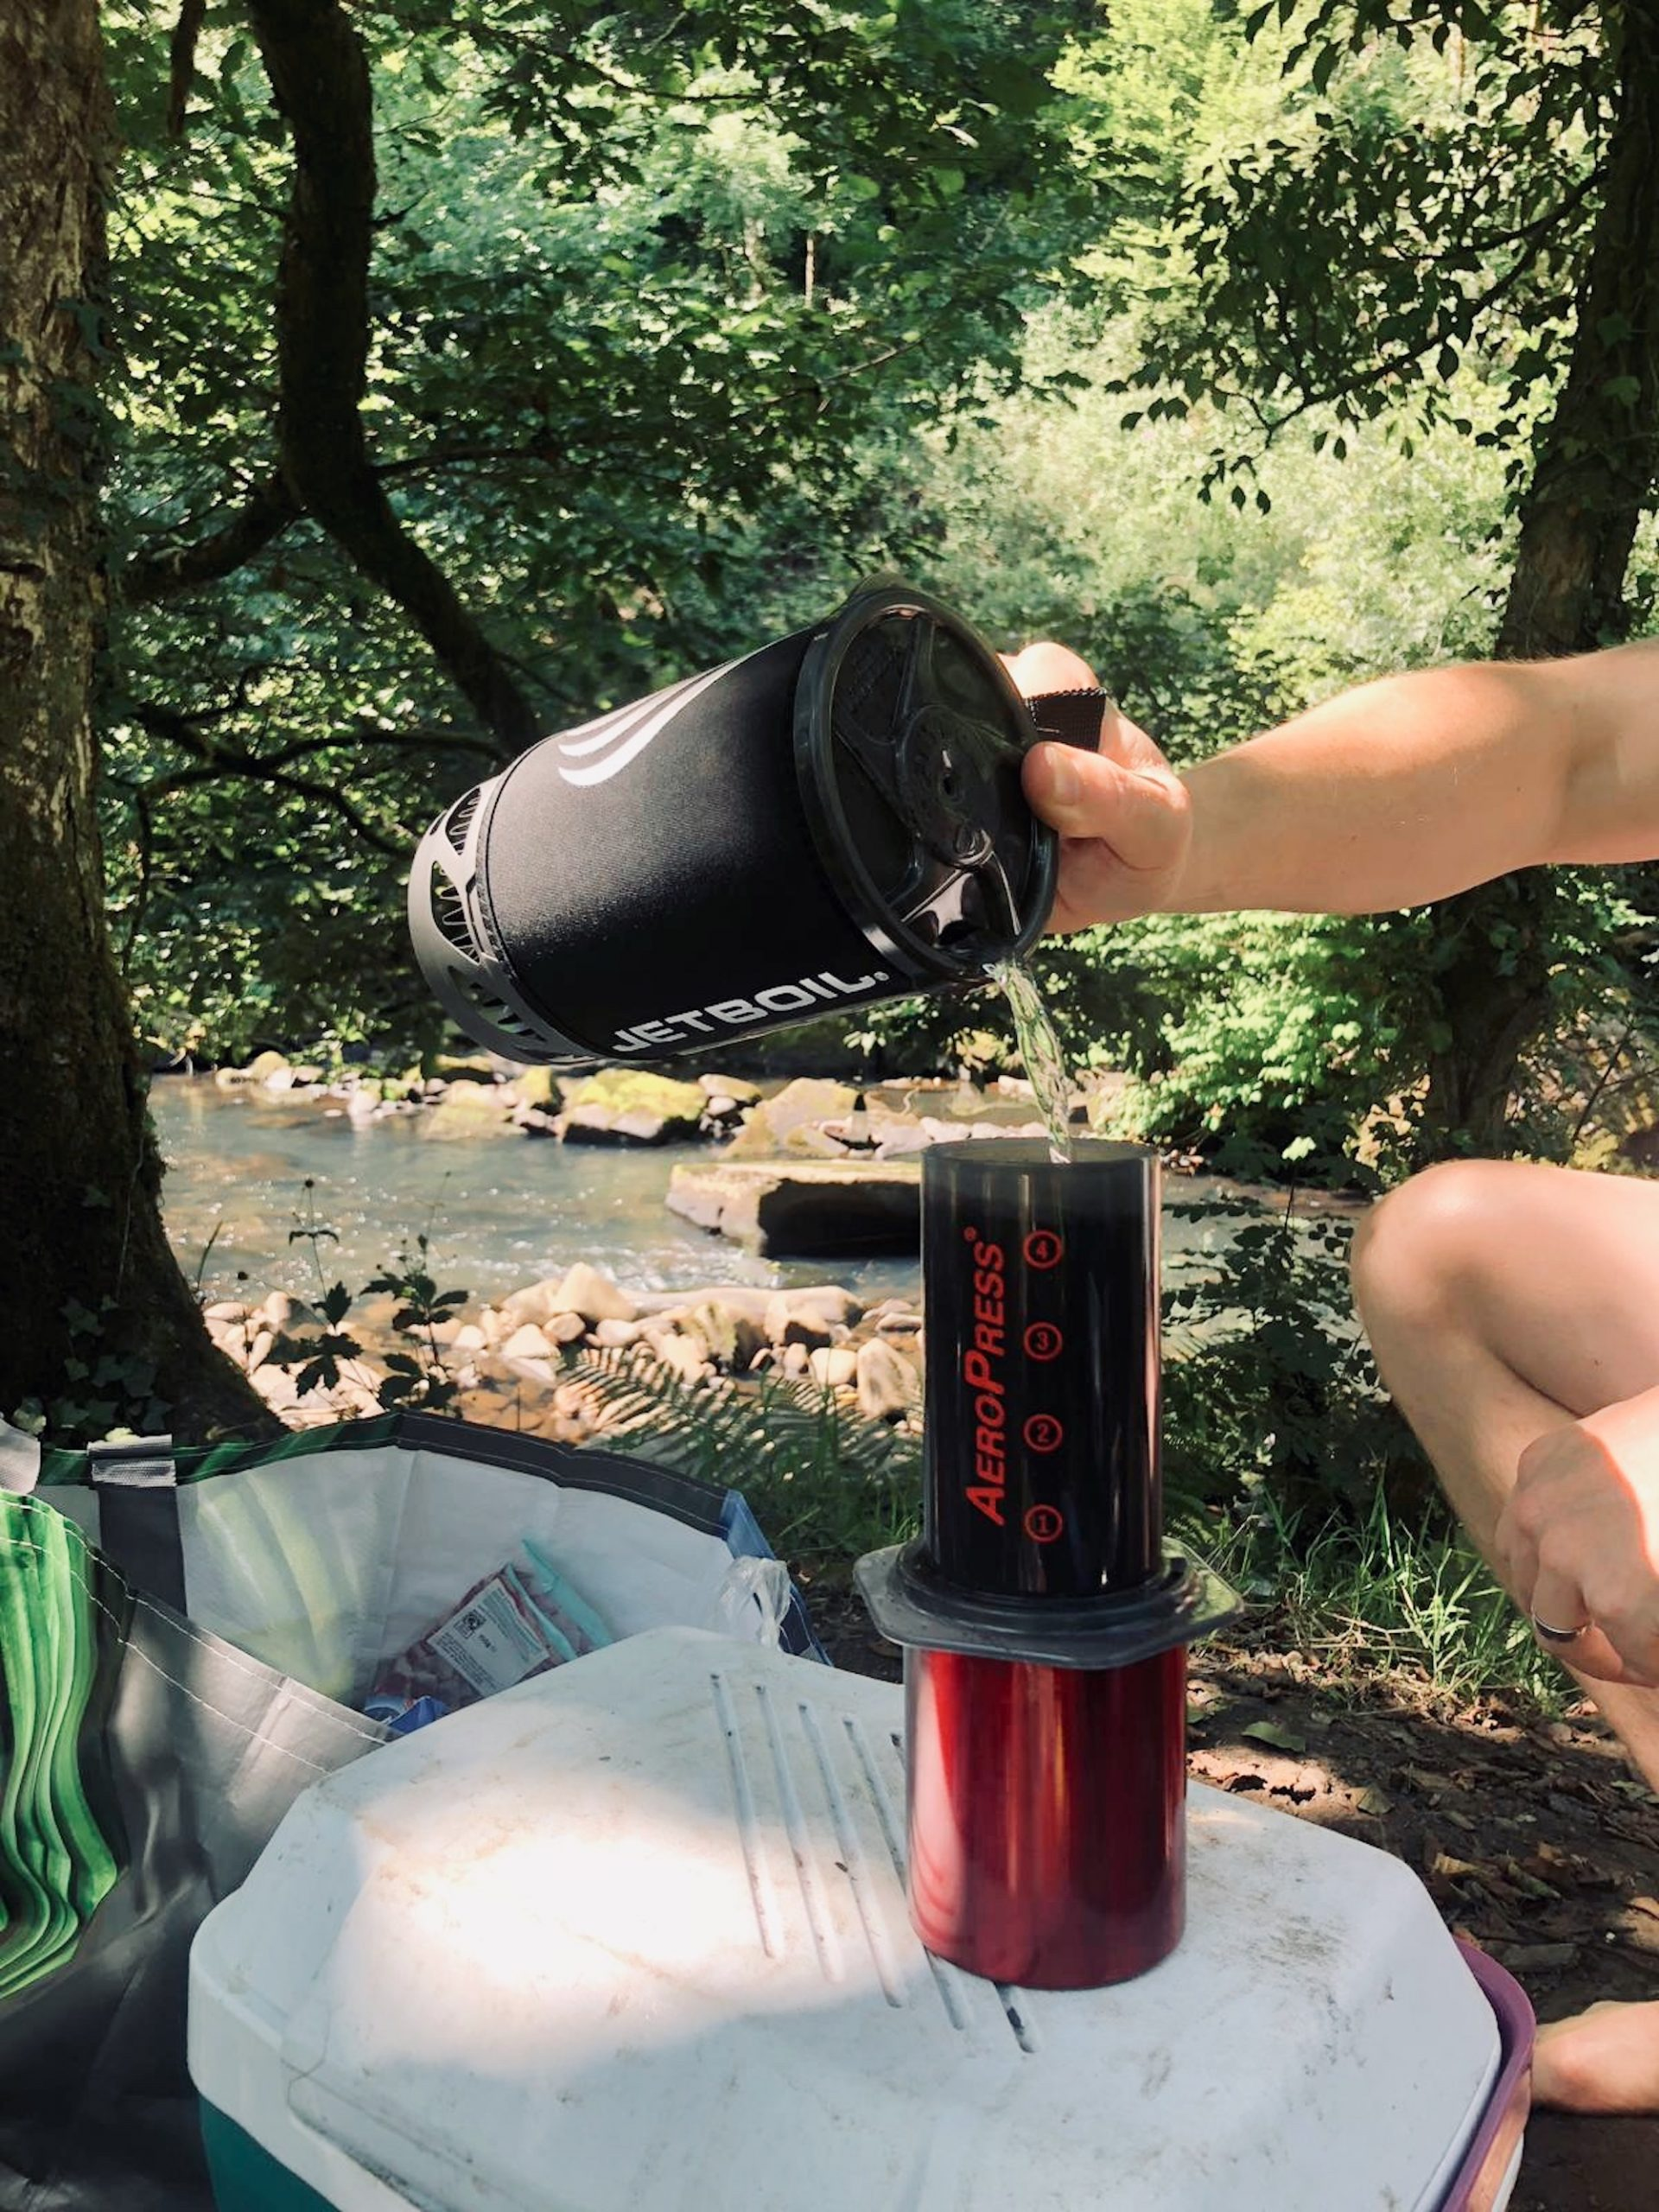 Making tea with Jetboil gas stove while camping in Wales